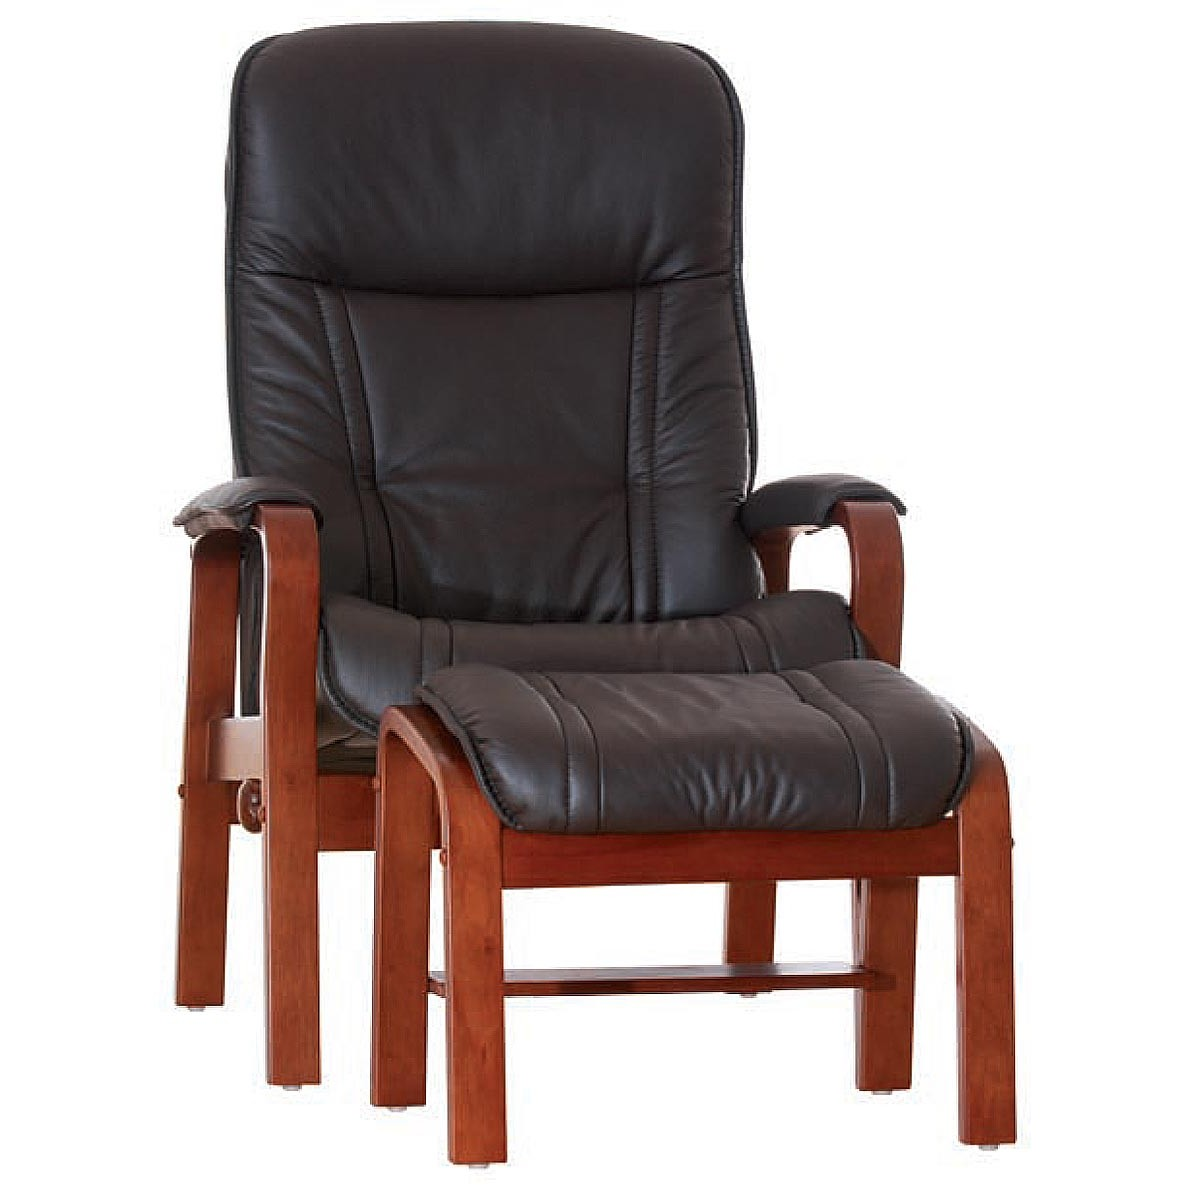 palliser chair and ottoman leather dining chairs with arms uk img jade 302 recliner set from $989.00 by | danco modern